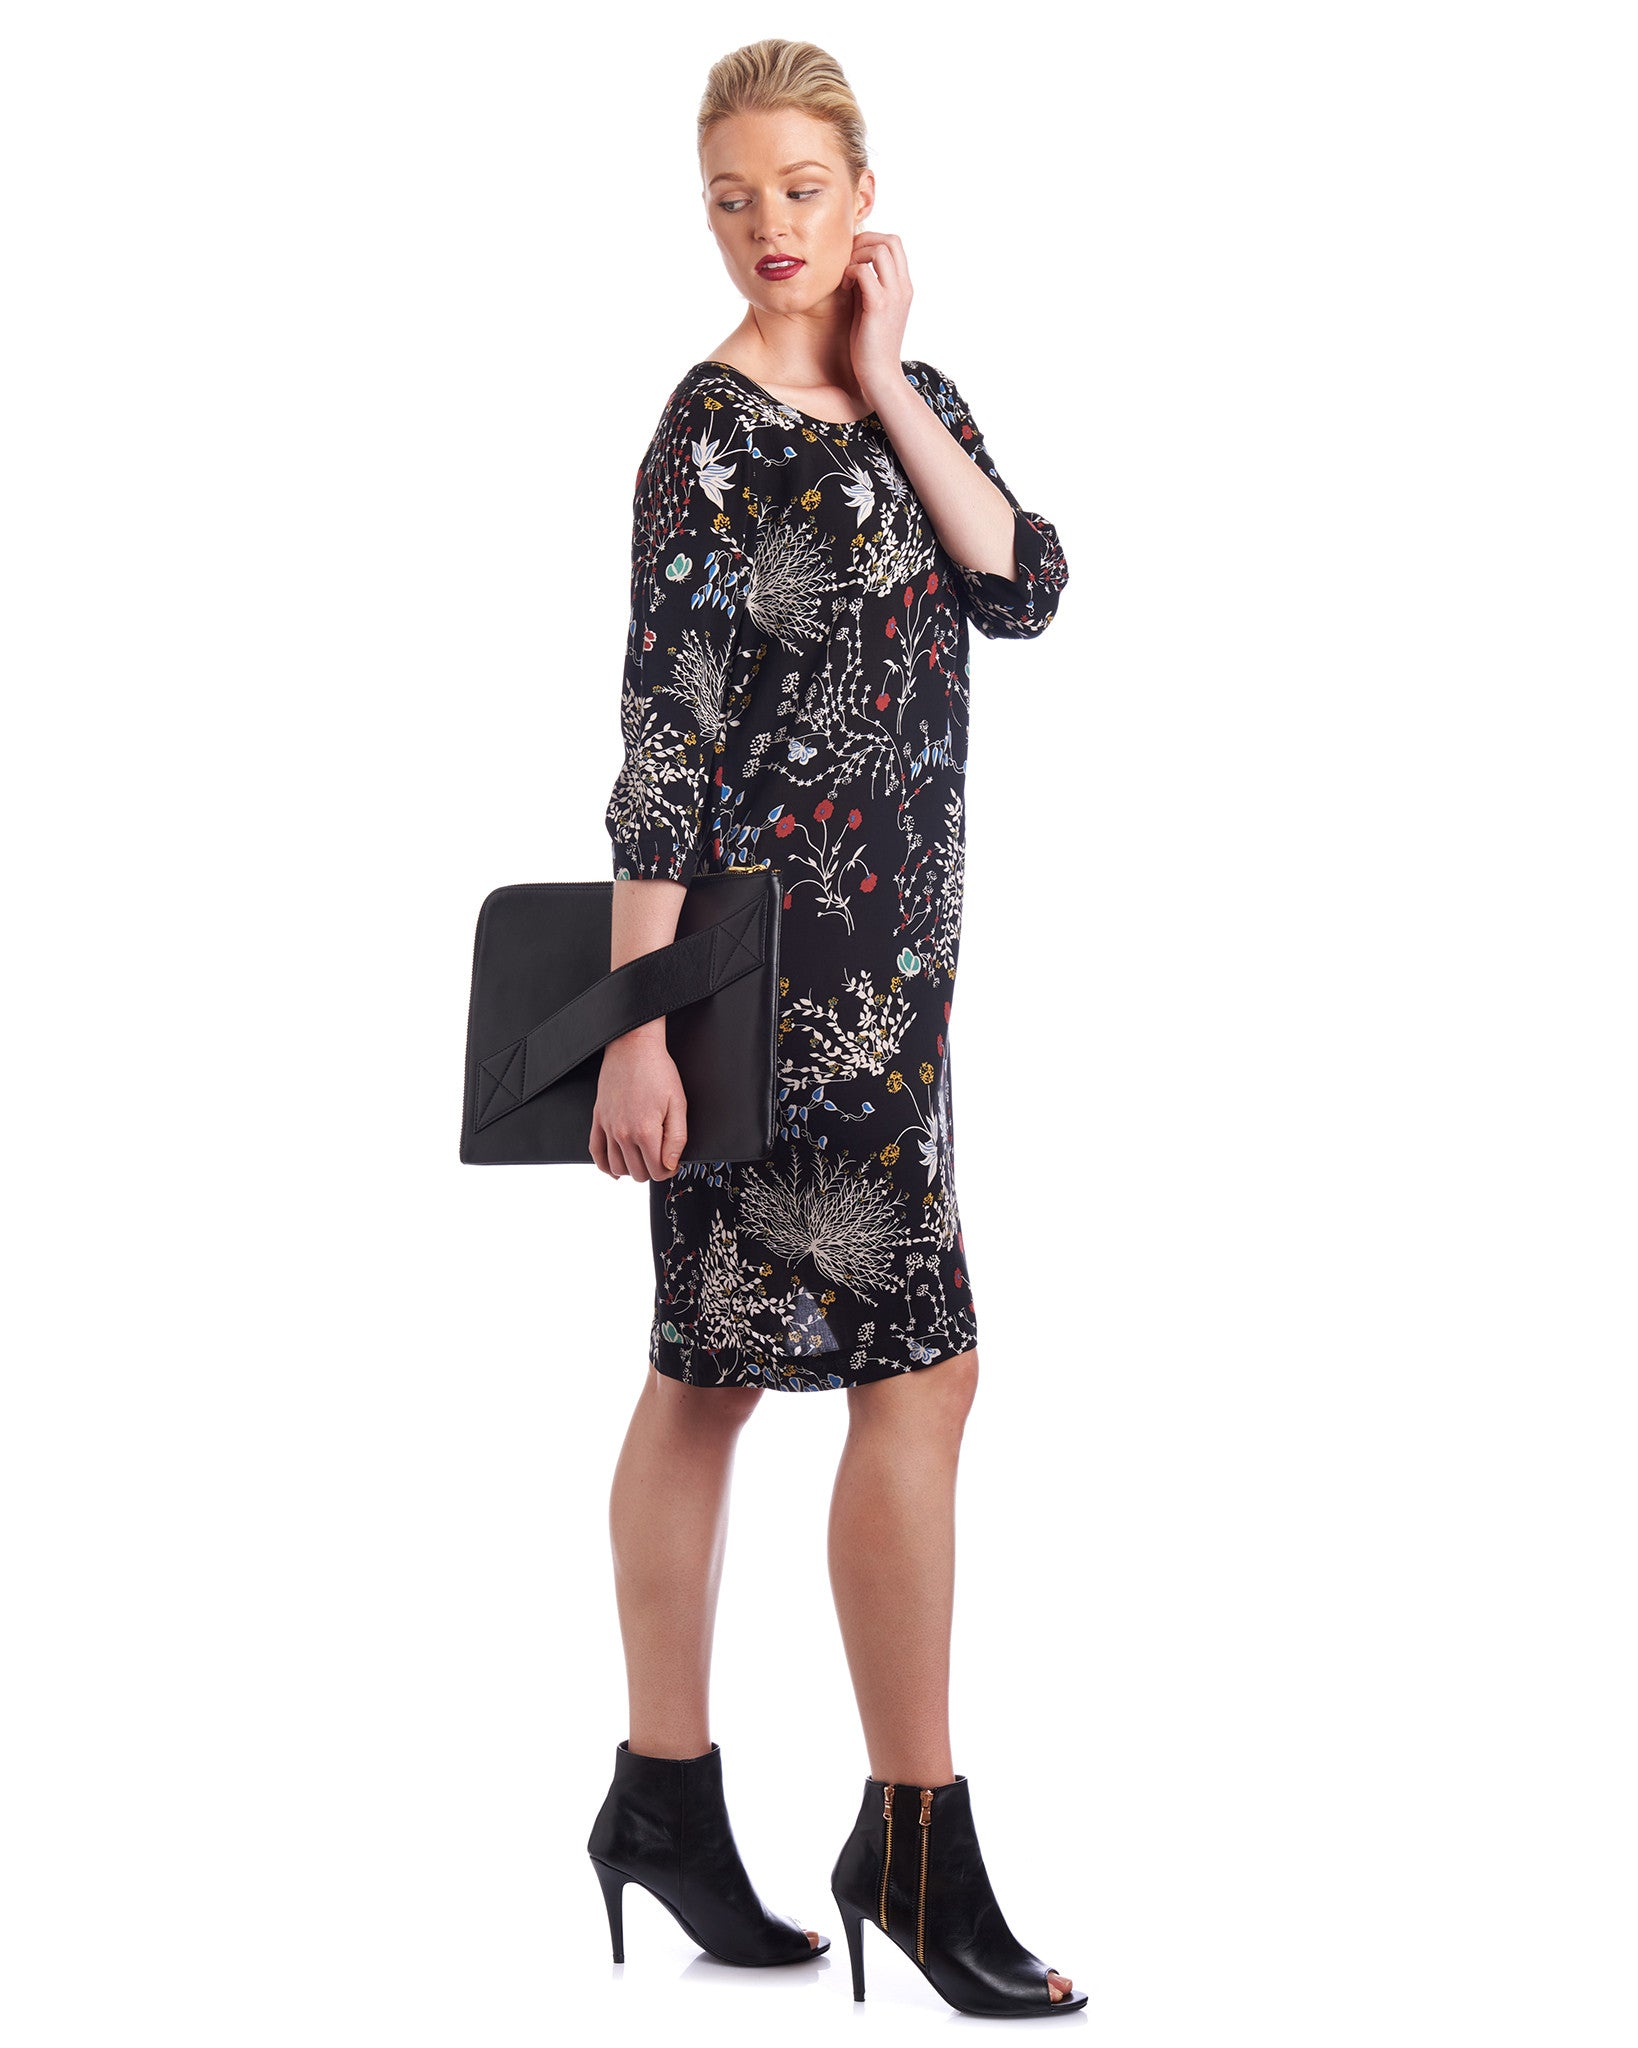 Keyhole shift dress with Tahlo limited edition prints